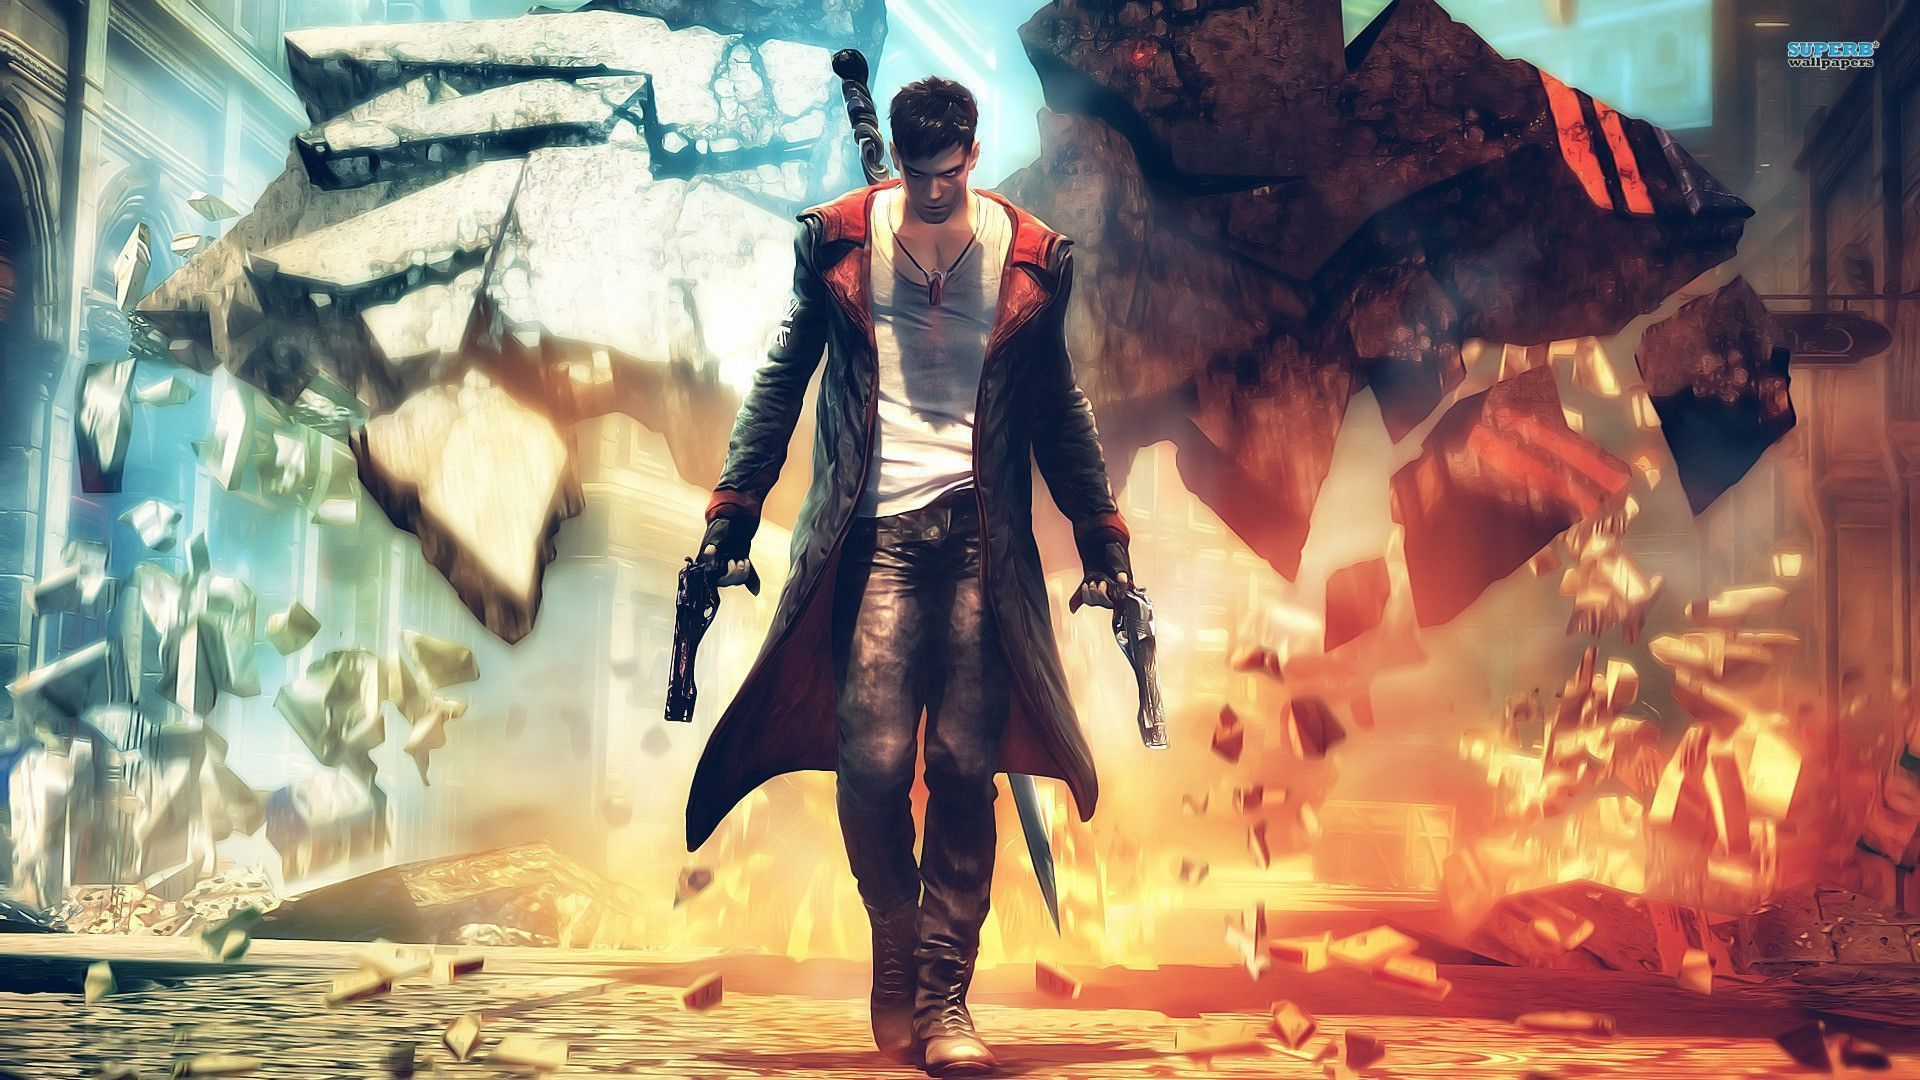 Dmc Devil May Cry Wallpapers Top Free Dmc Devil May Cry